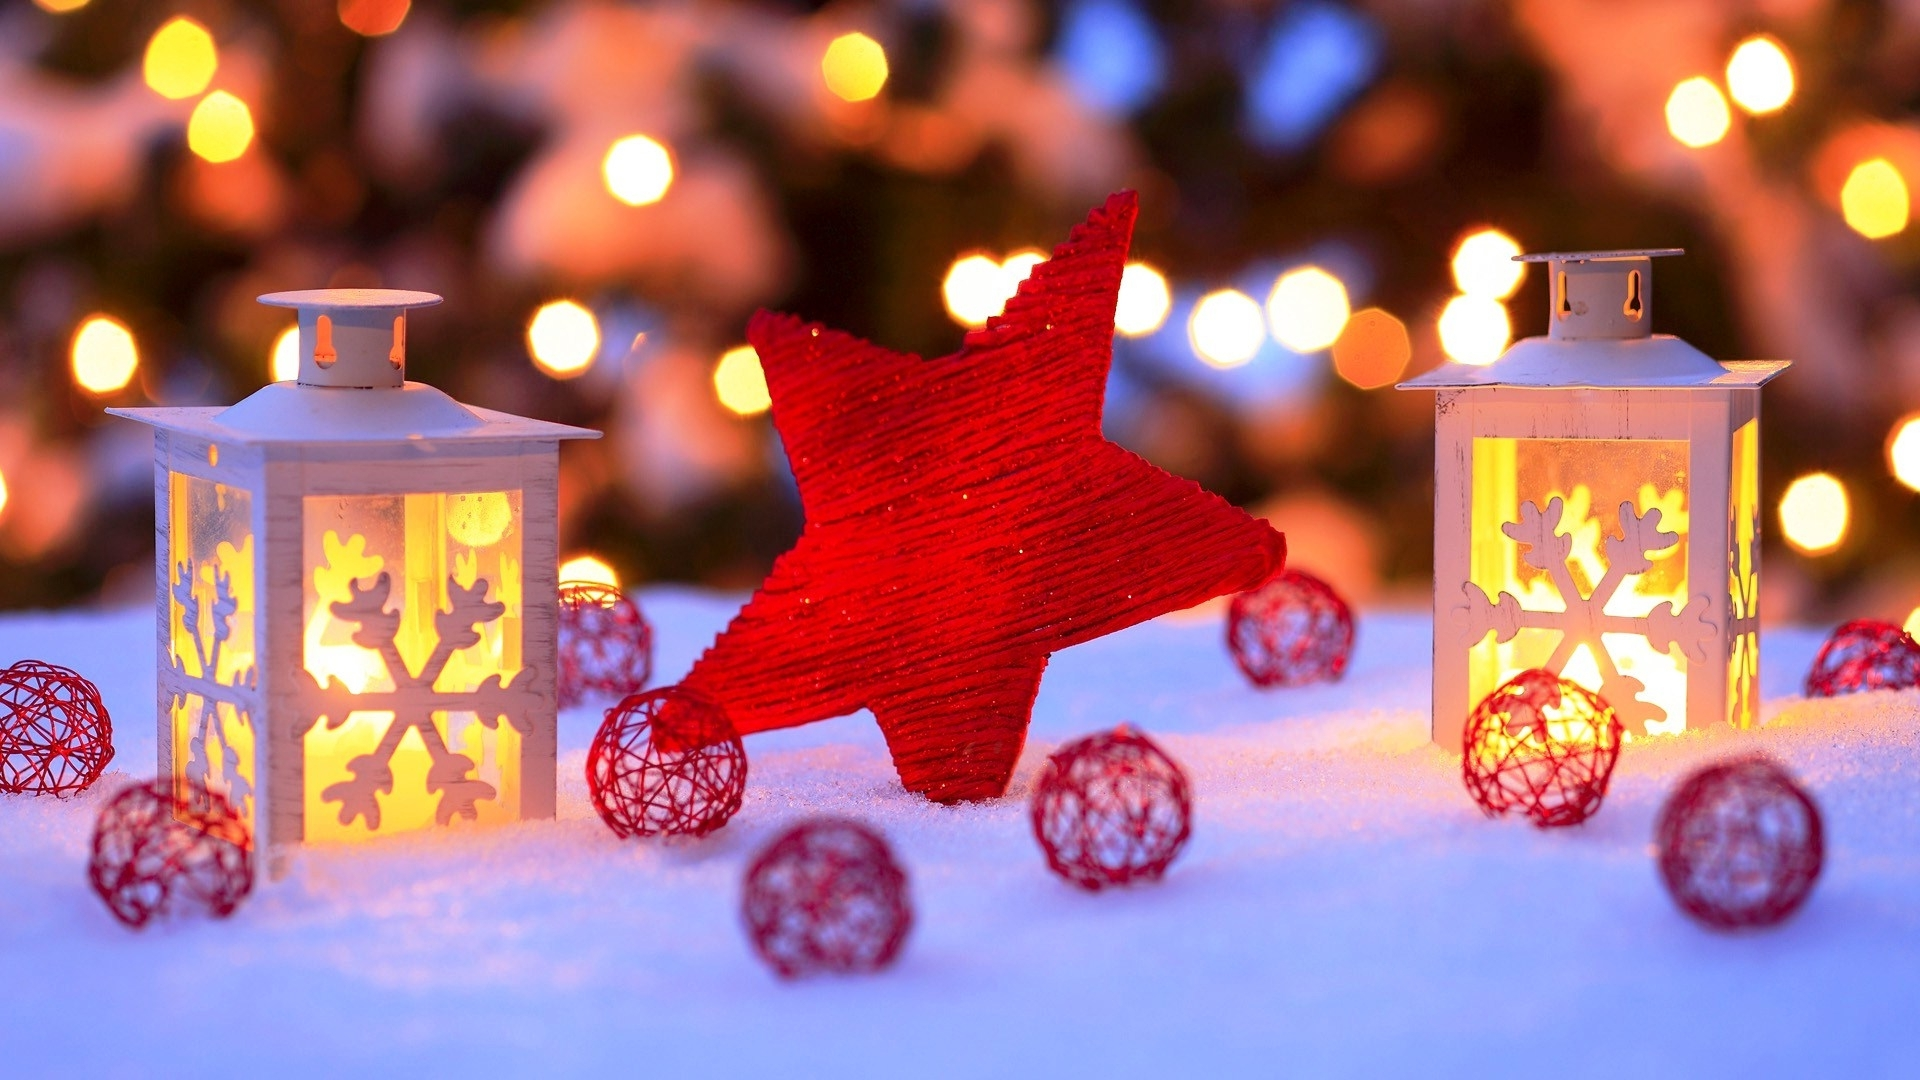 Download Best Christmas Wallpapers Gallery